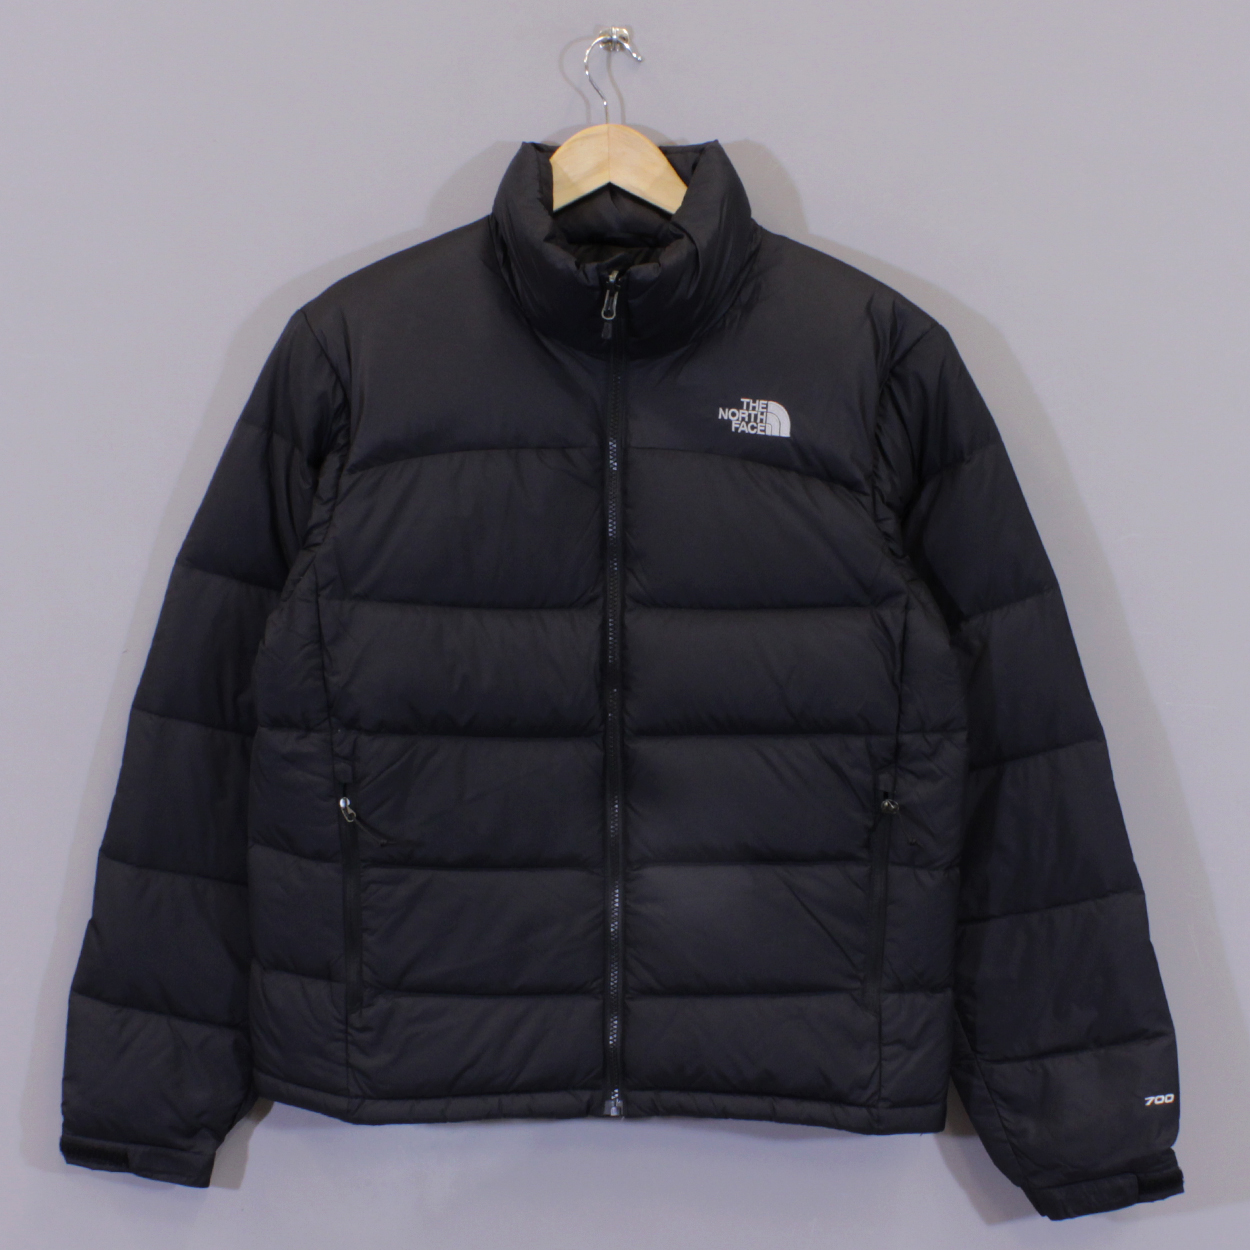 c1a05fa8c The North Face Mens Nuptse 2 Jacket Black £15.00